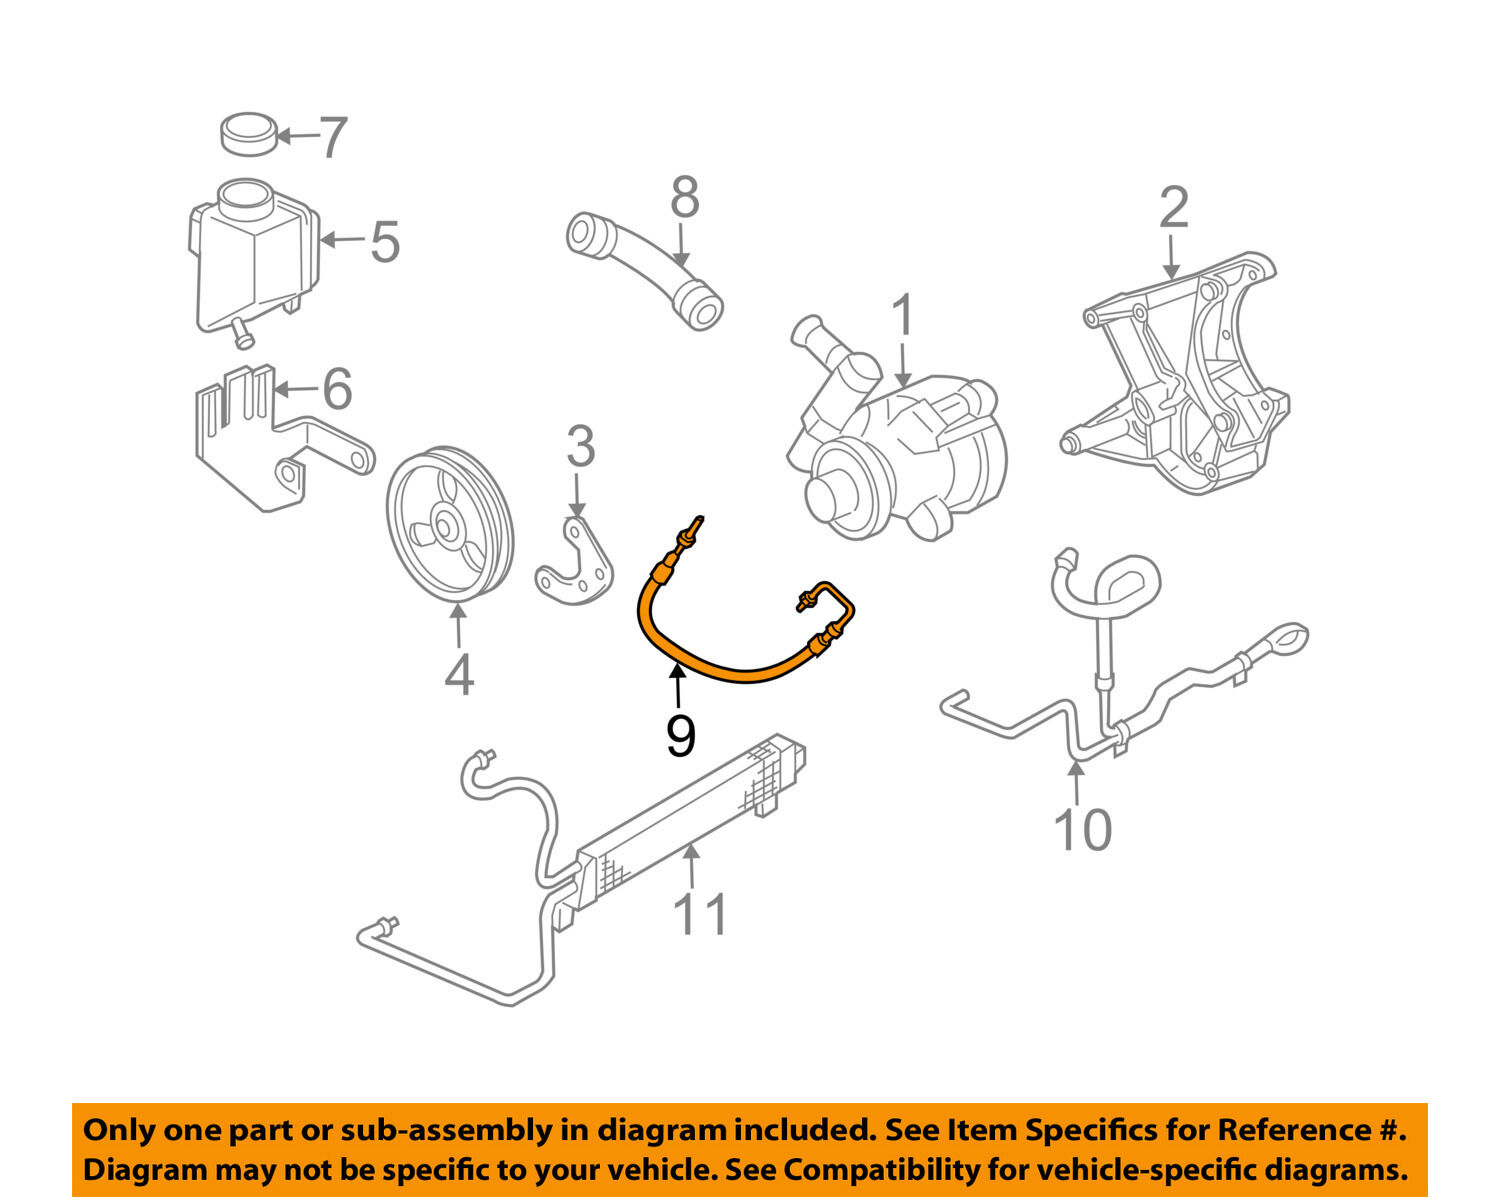 Chevrolet Gm Oem 05 07 Corvette Power Steering Pressure Hose 2007 Z06 Wiring Diagrams For Dummies 1 Of 2only 2 Available